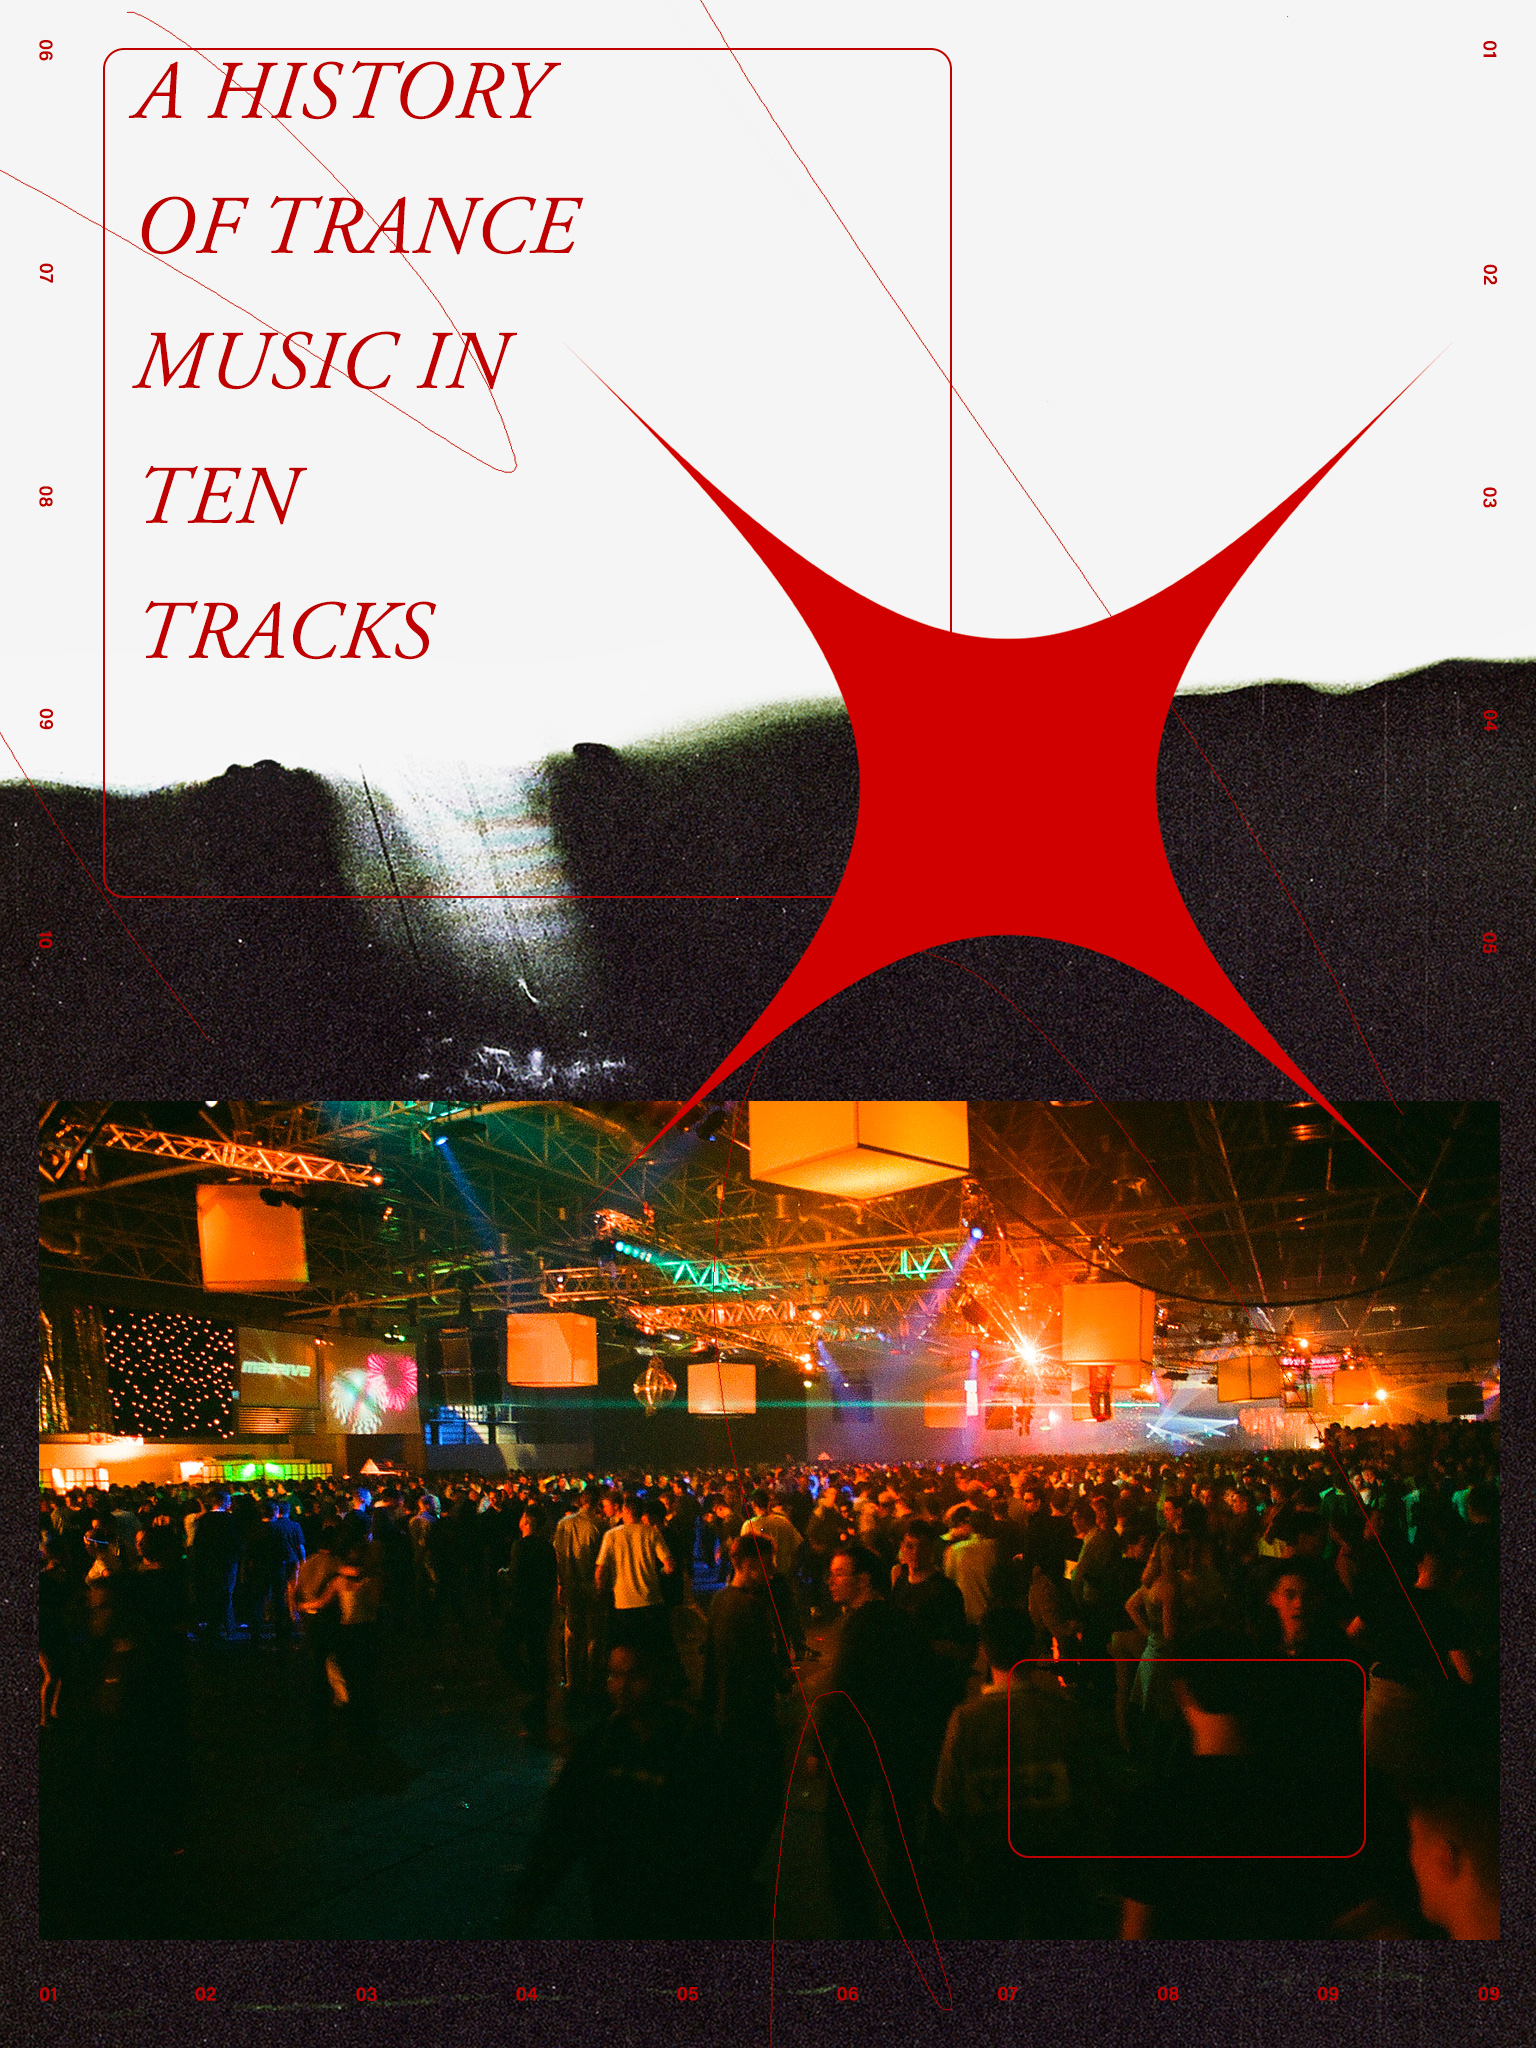 A History of Trance Music in Ten Tracks